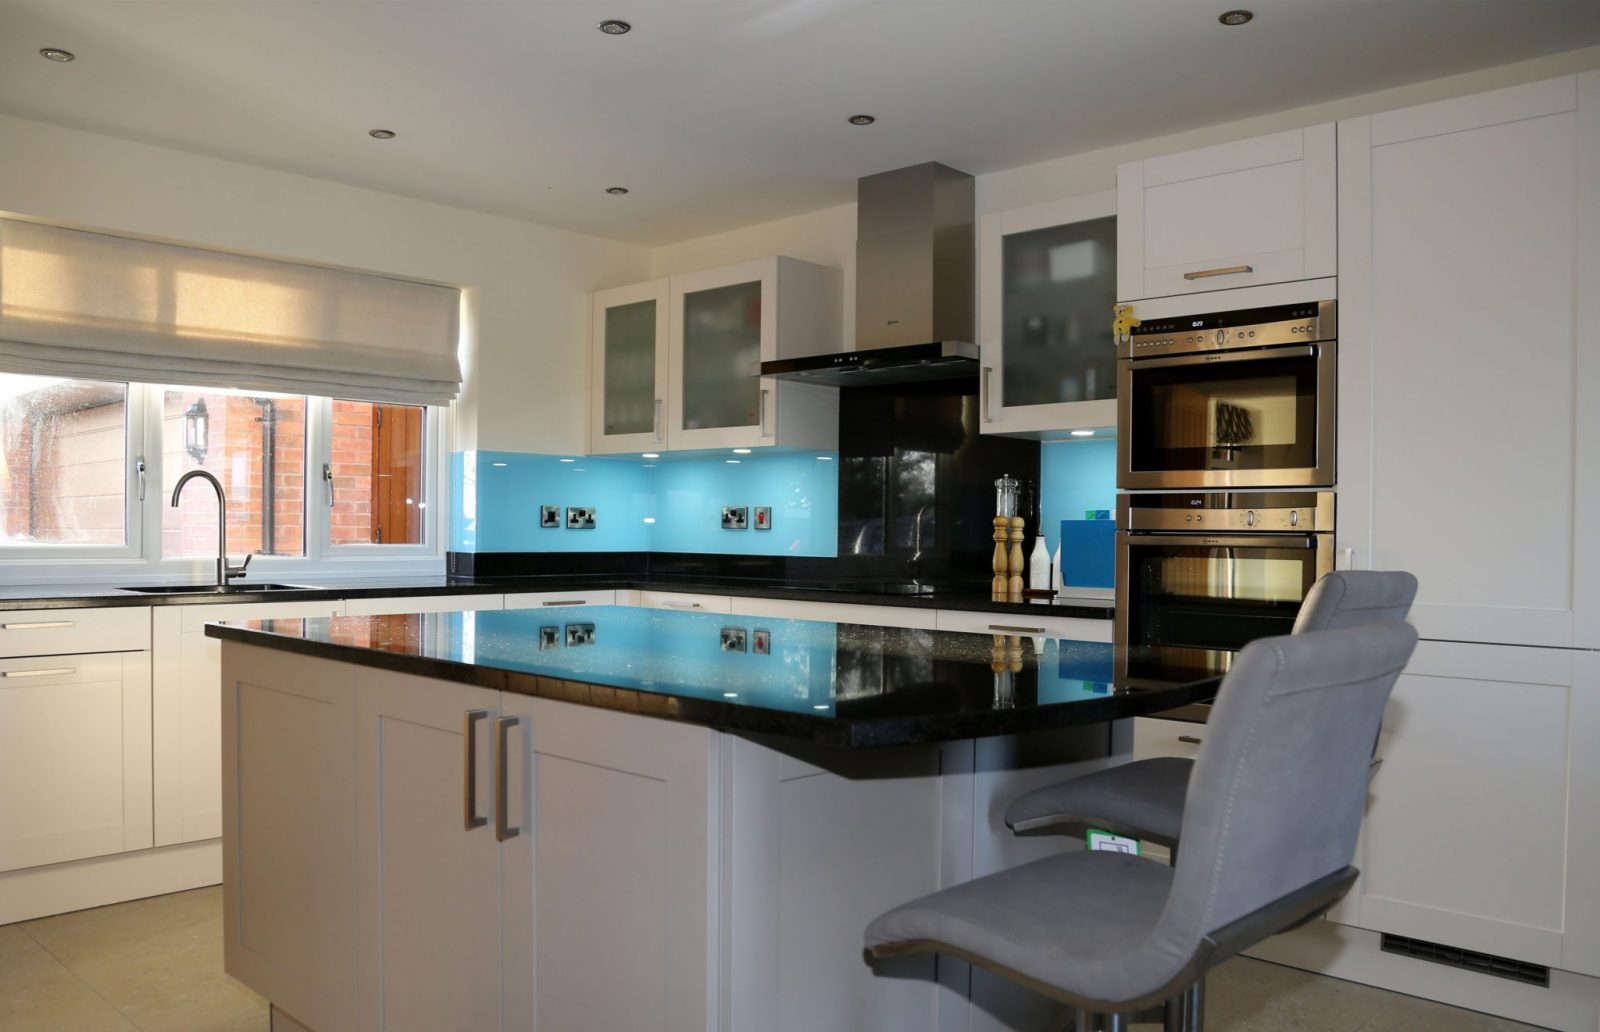 Azure Blue Kitchen Splashback